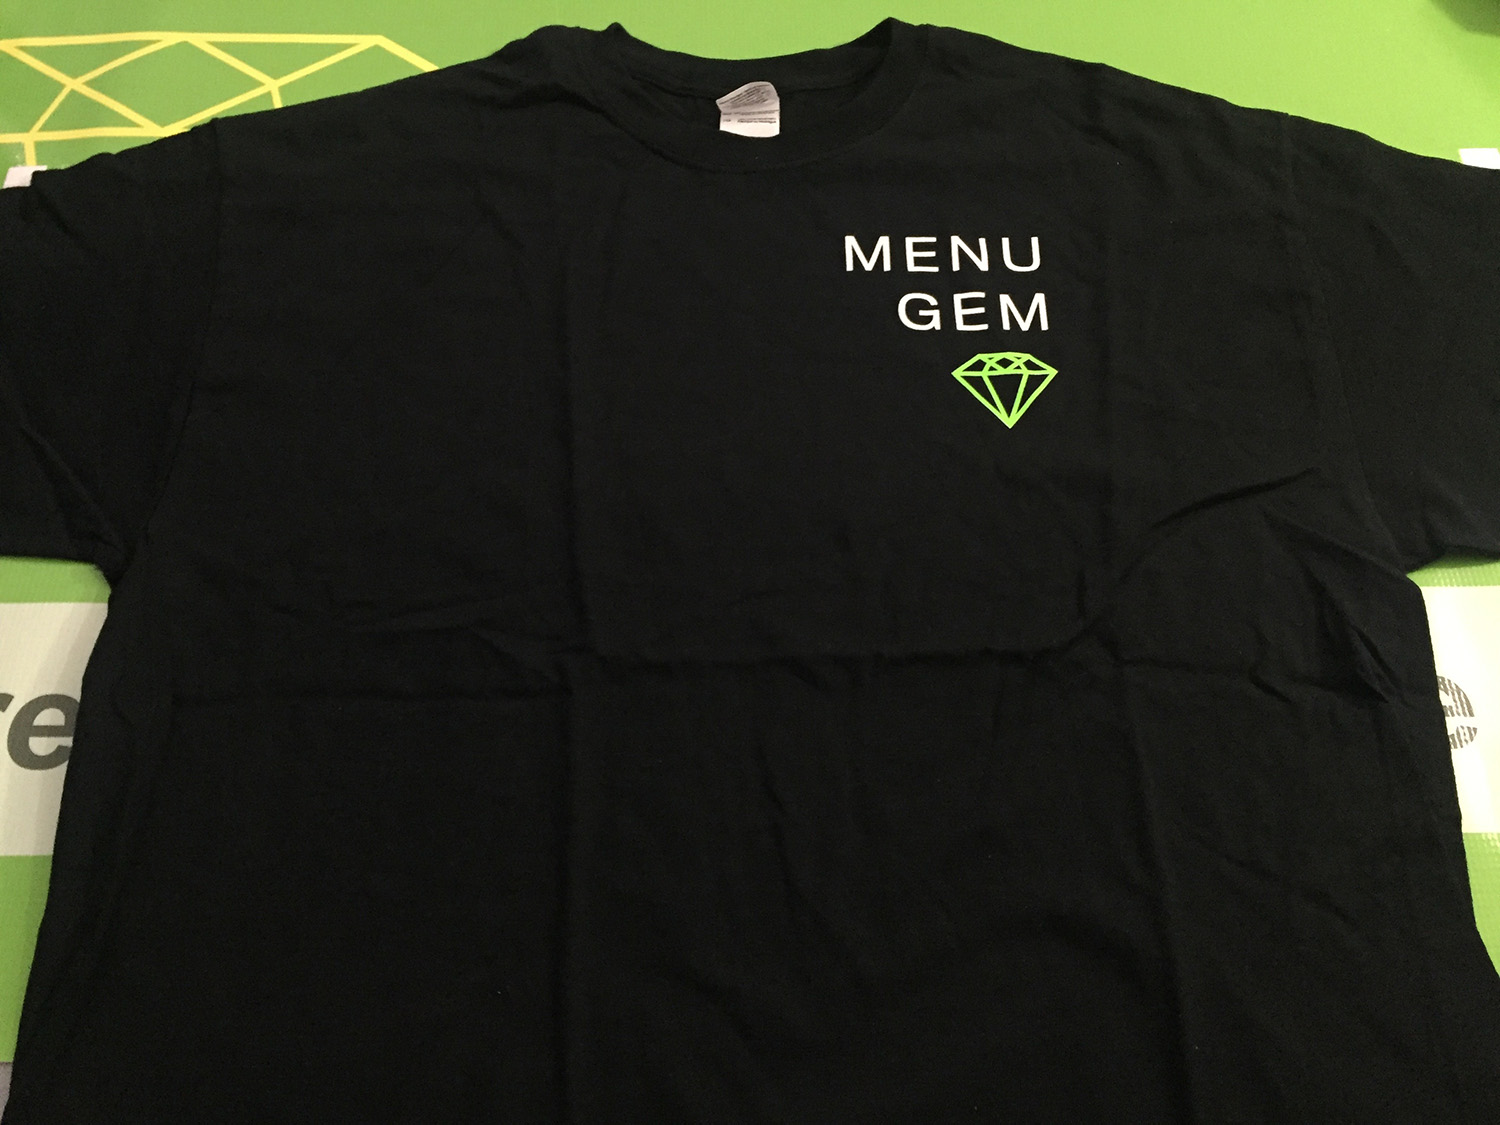 MenuGem Mens T-shirt Black with Green Diamond XLarge